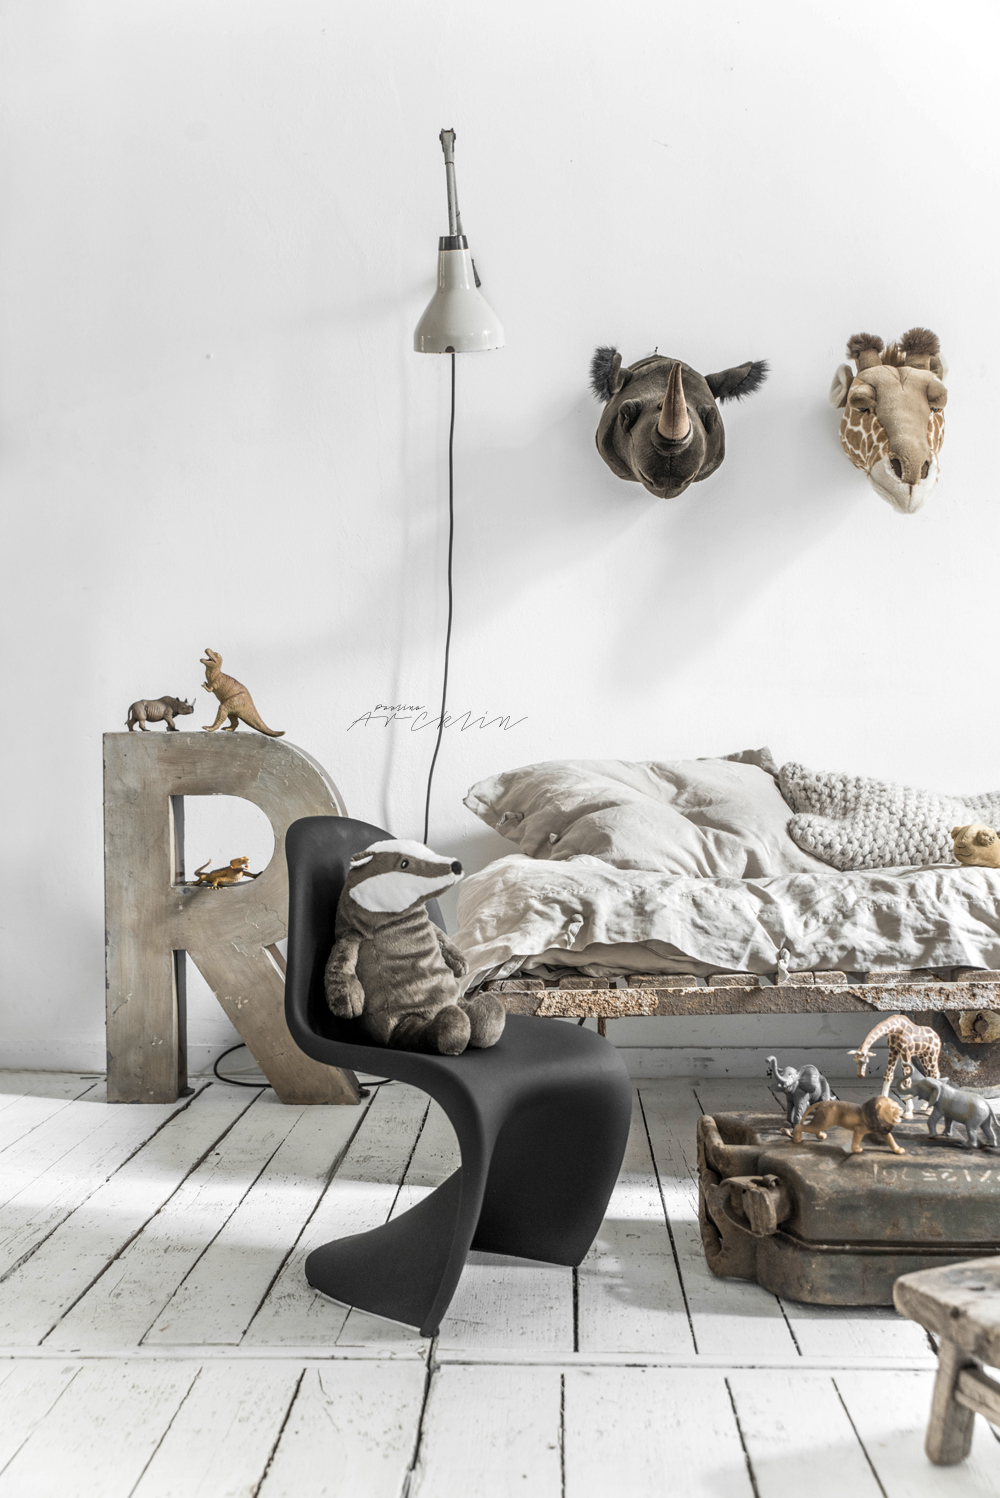 soft-animal-heads-wall-decor